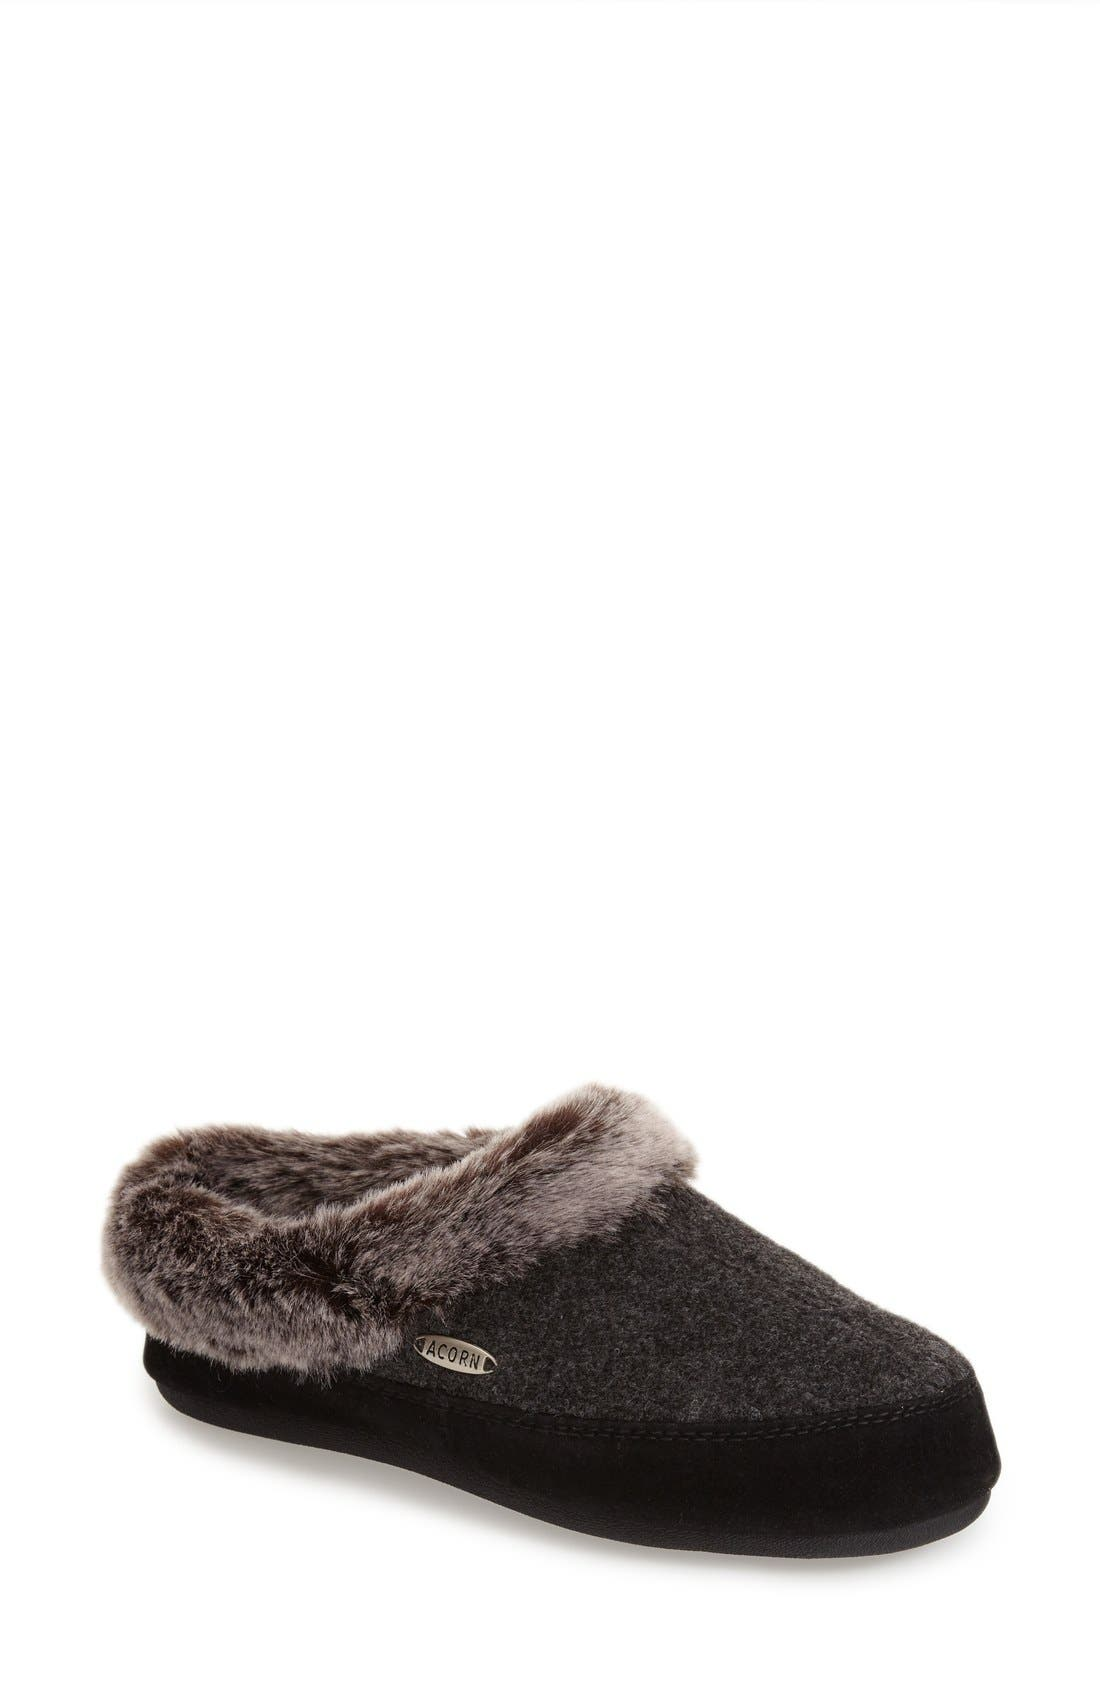 Main Image - Acorn 'Cloud Chilla Scuff' Slipper (Women)